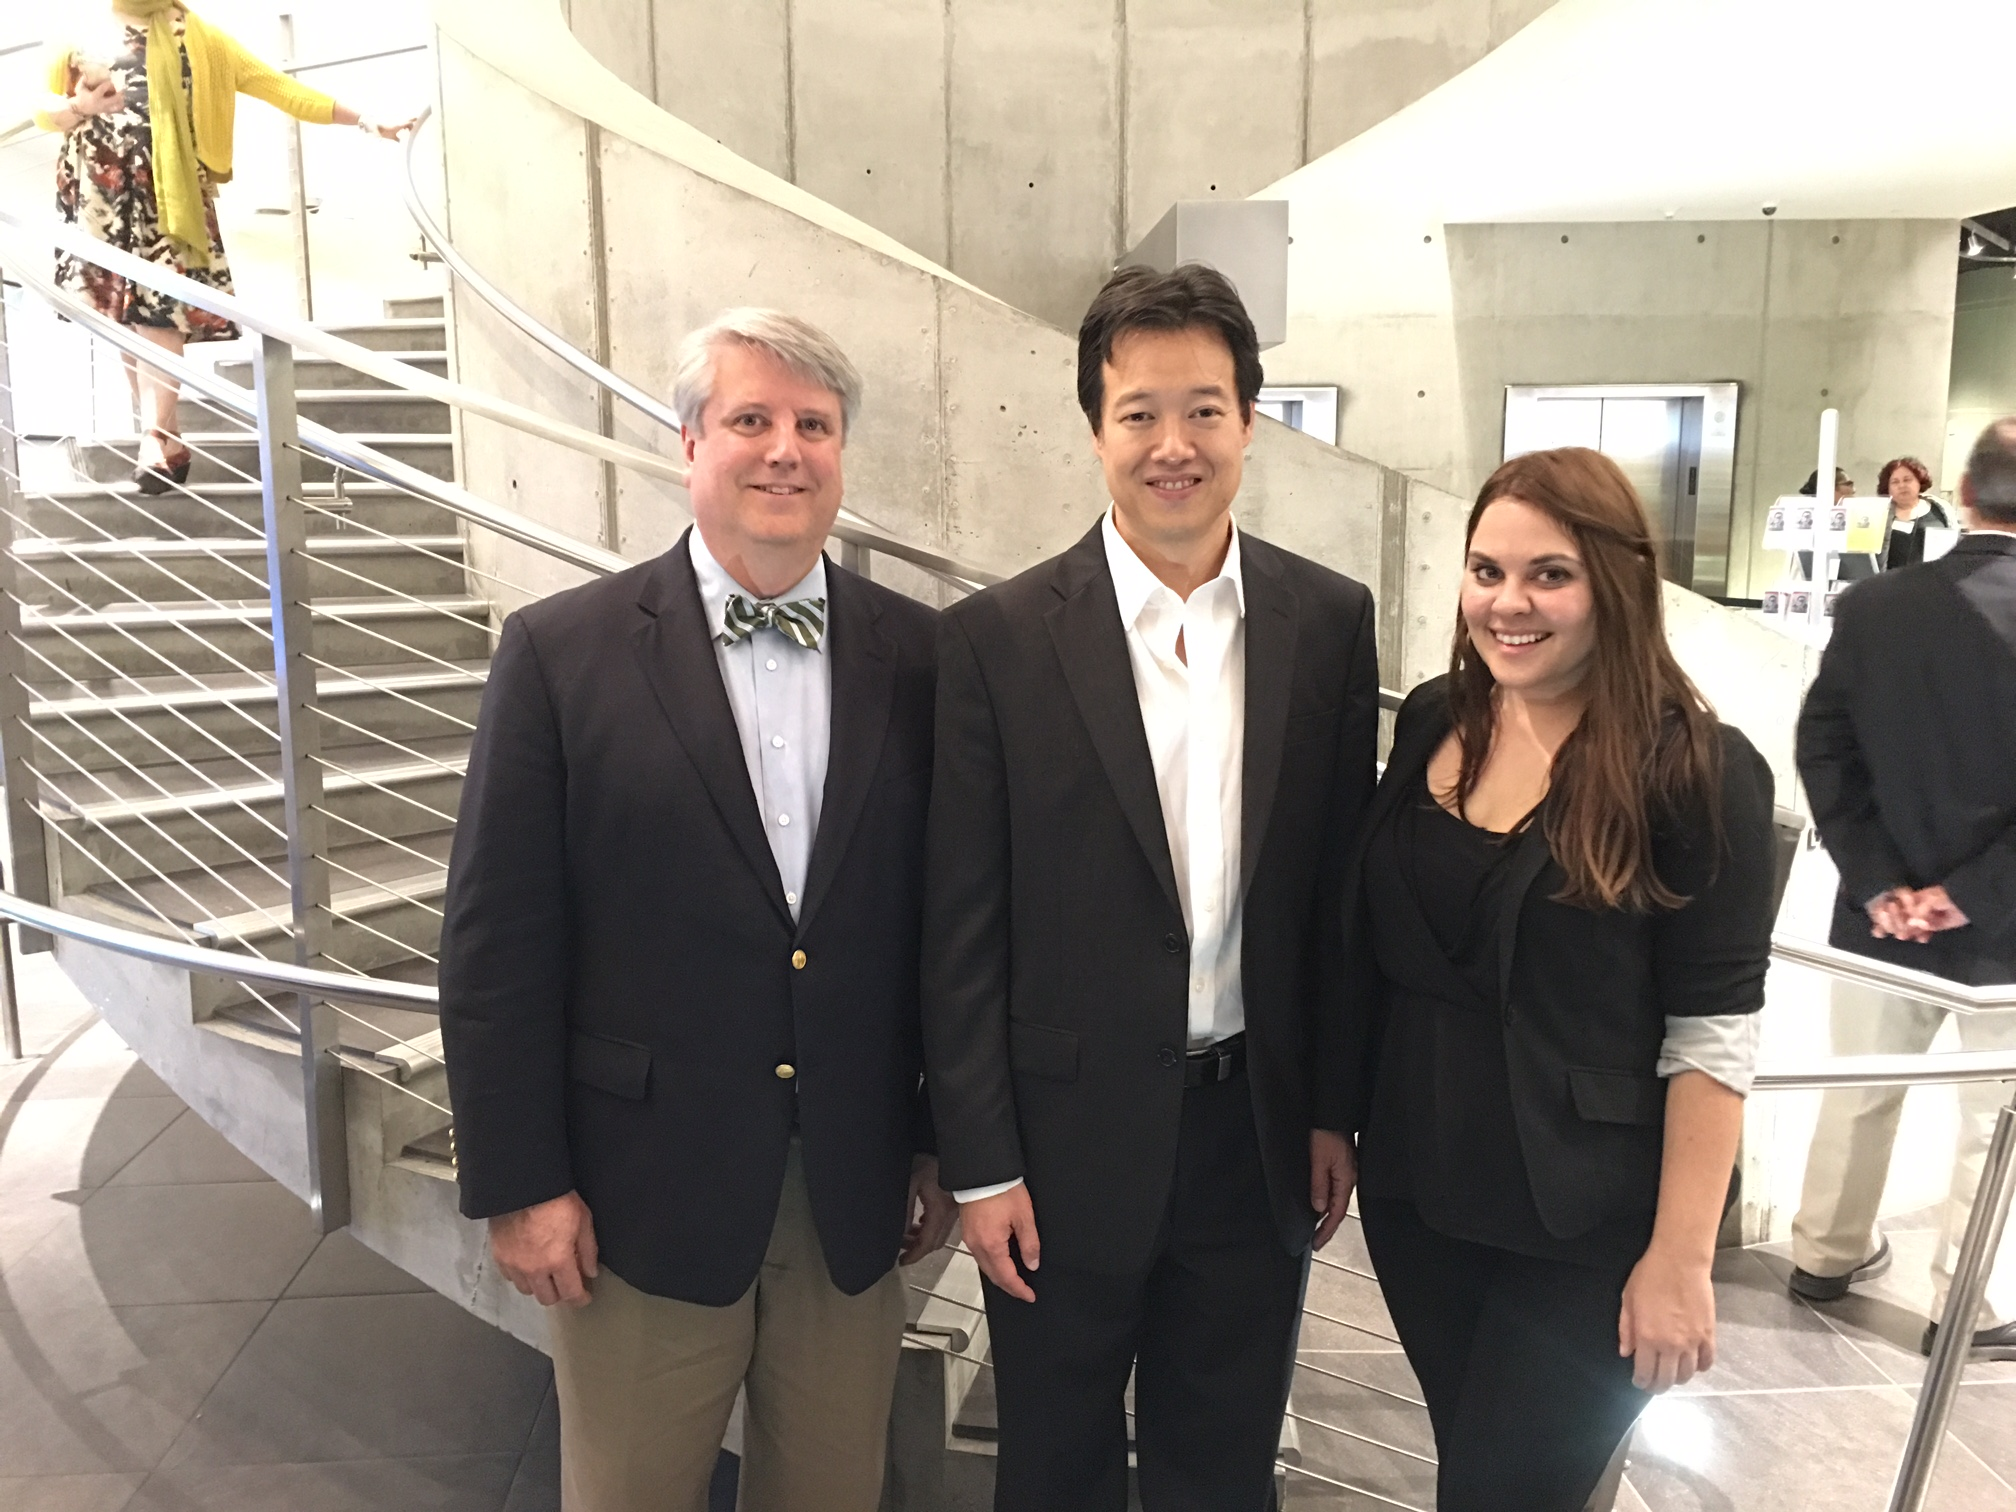 (From left) Hal Bowling, Executive Director, LAUNCH; Victor Hwang, Vice President of Entrepreneurship, Kauffman Foundation; Allison Reedy, Chief Operations Officer, CO.LAB